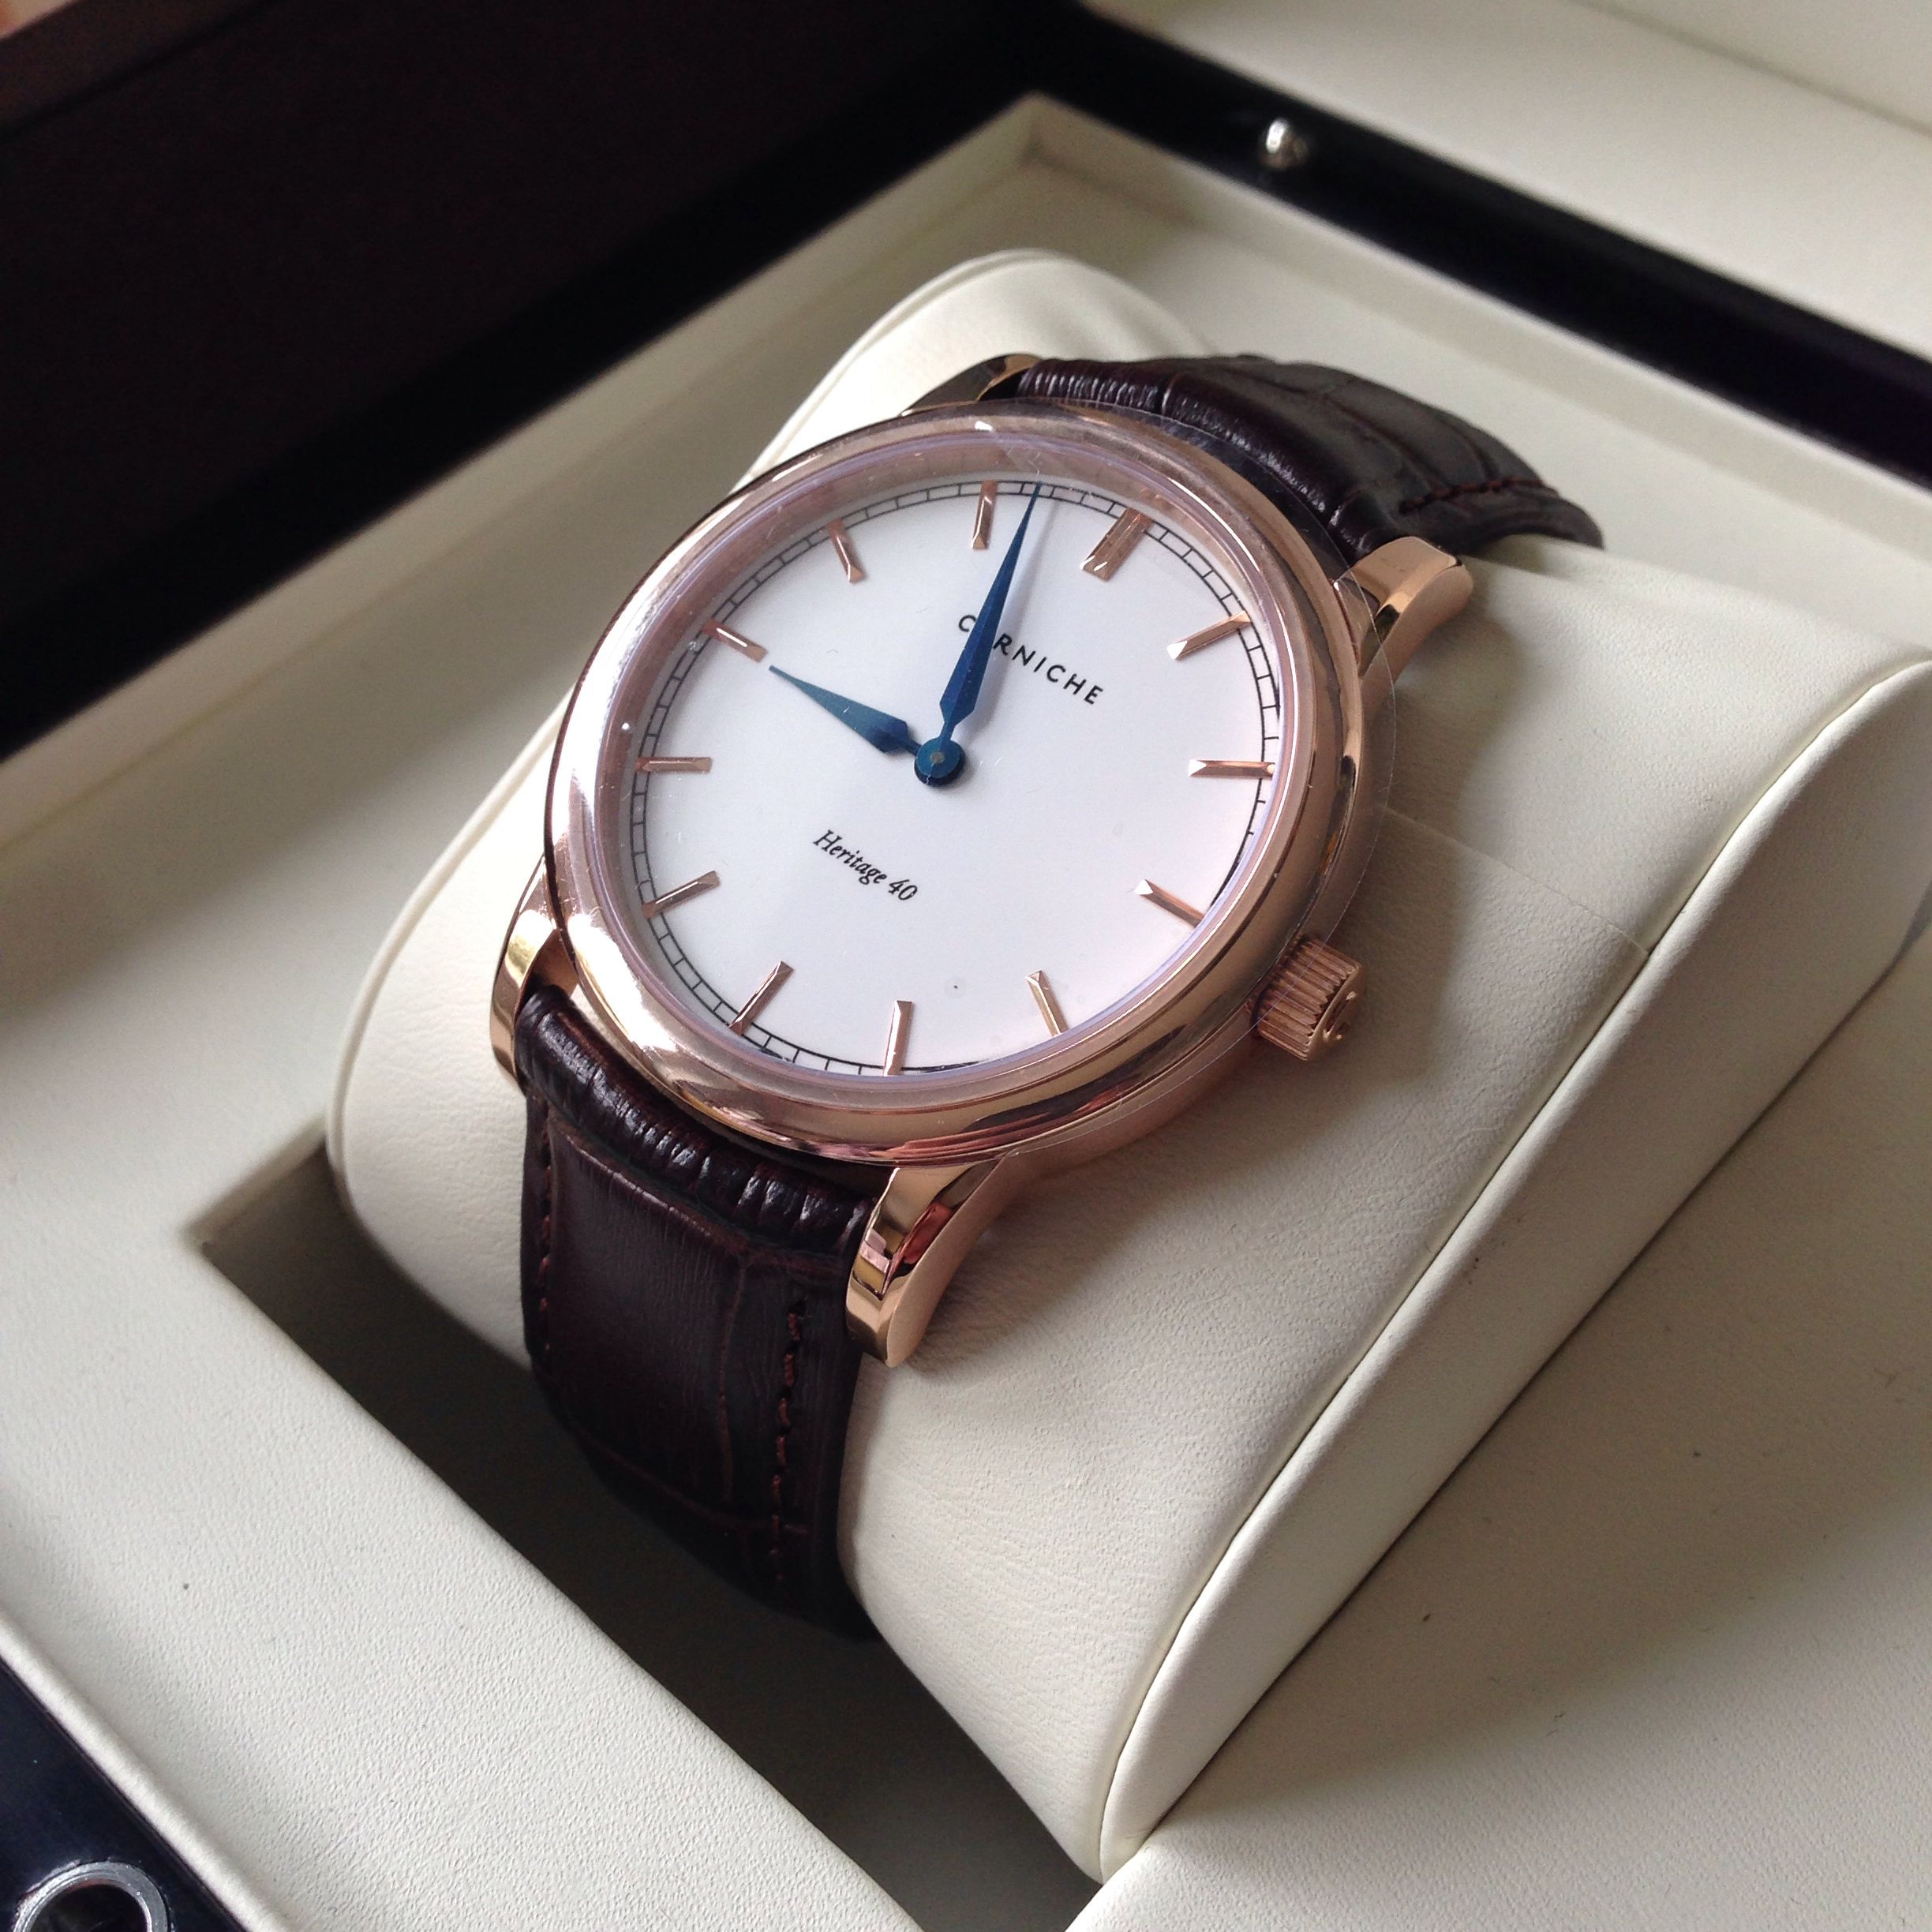 corniche watches heritage 40 gold limited to 250